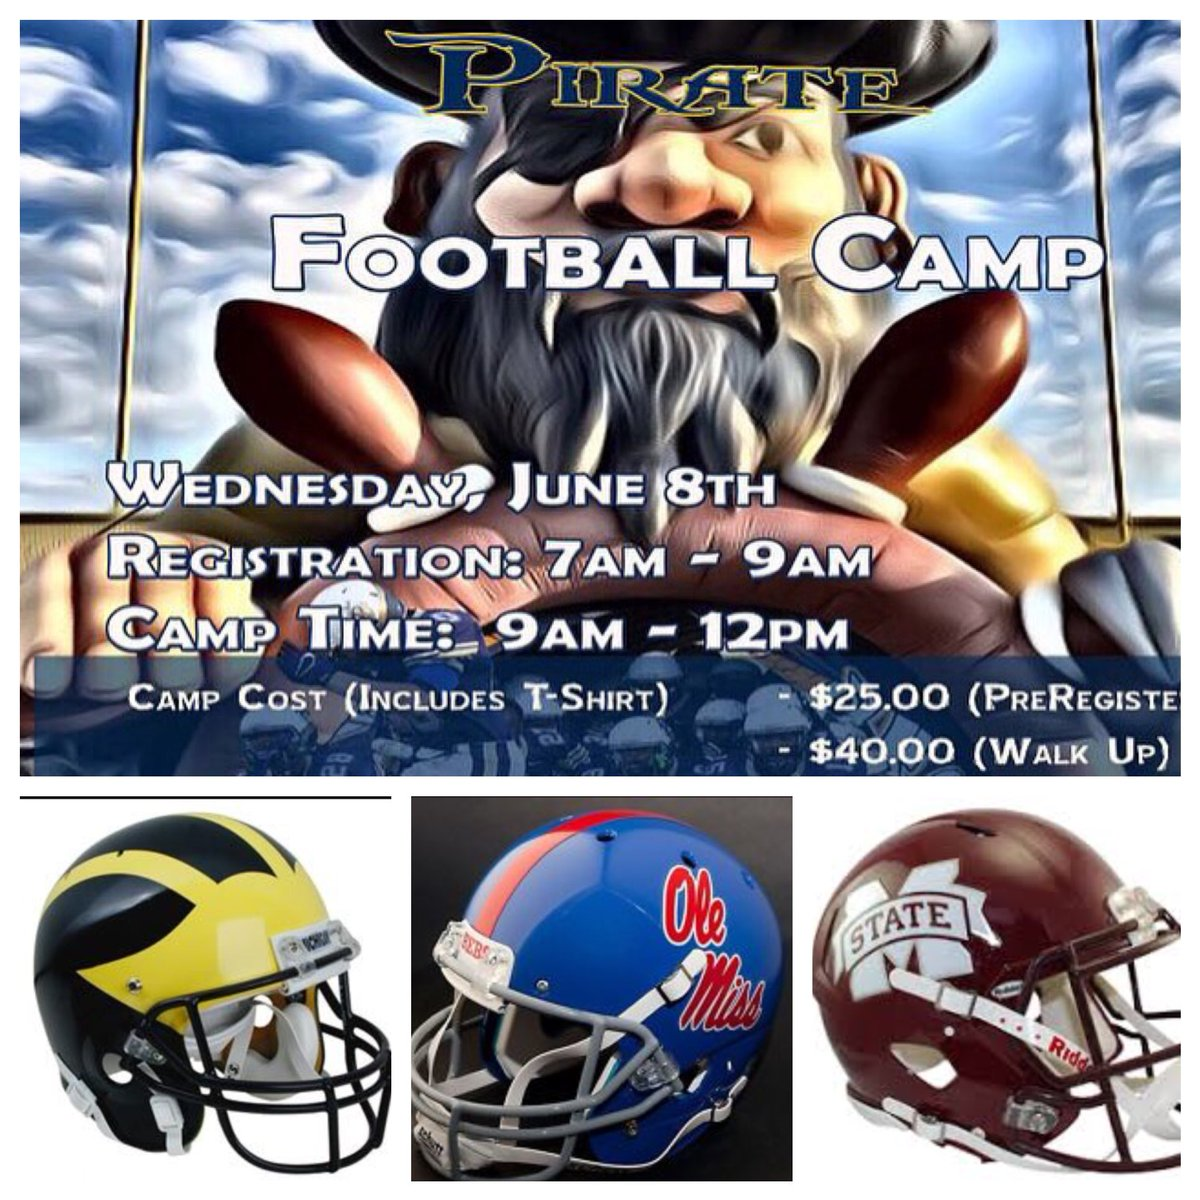 John Perry On Twitter Pearl Pirate Football Camp Coming Soon